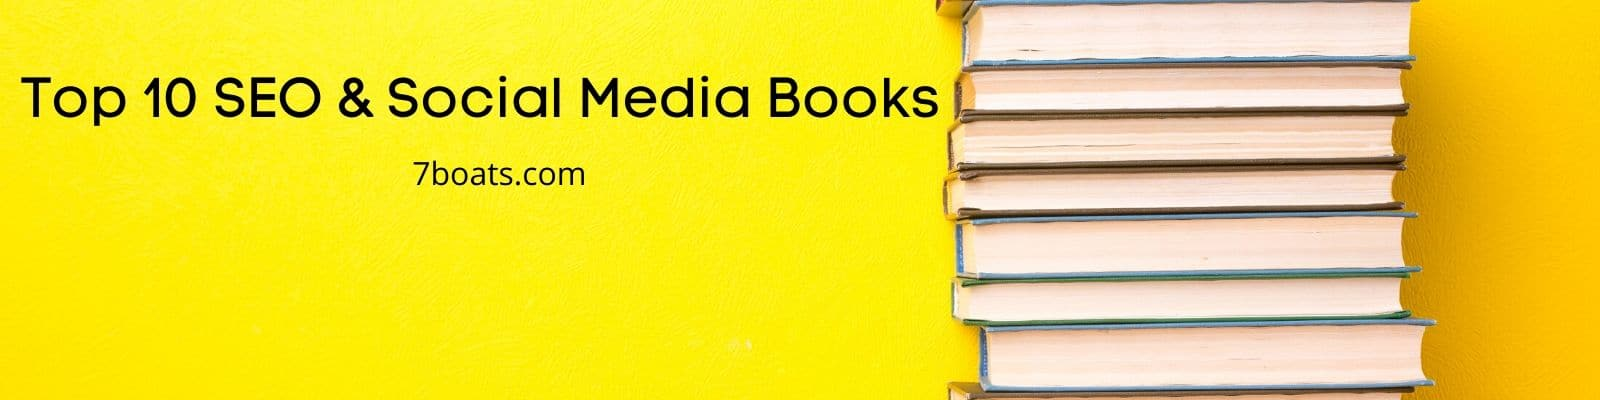 Best SEO Books & Social Media Books